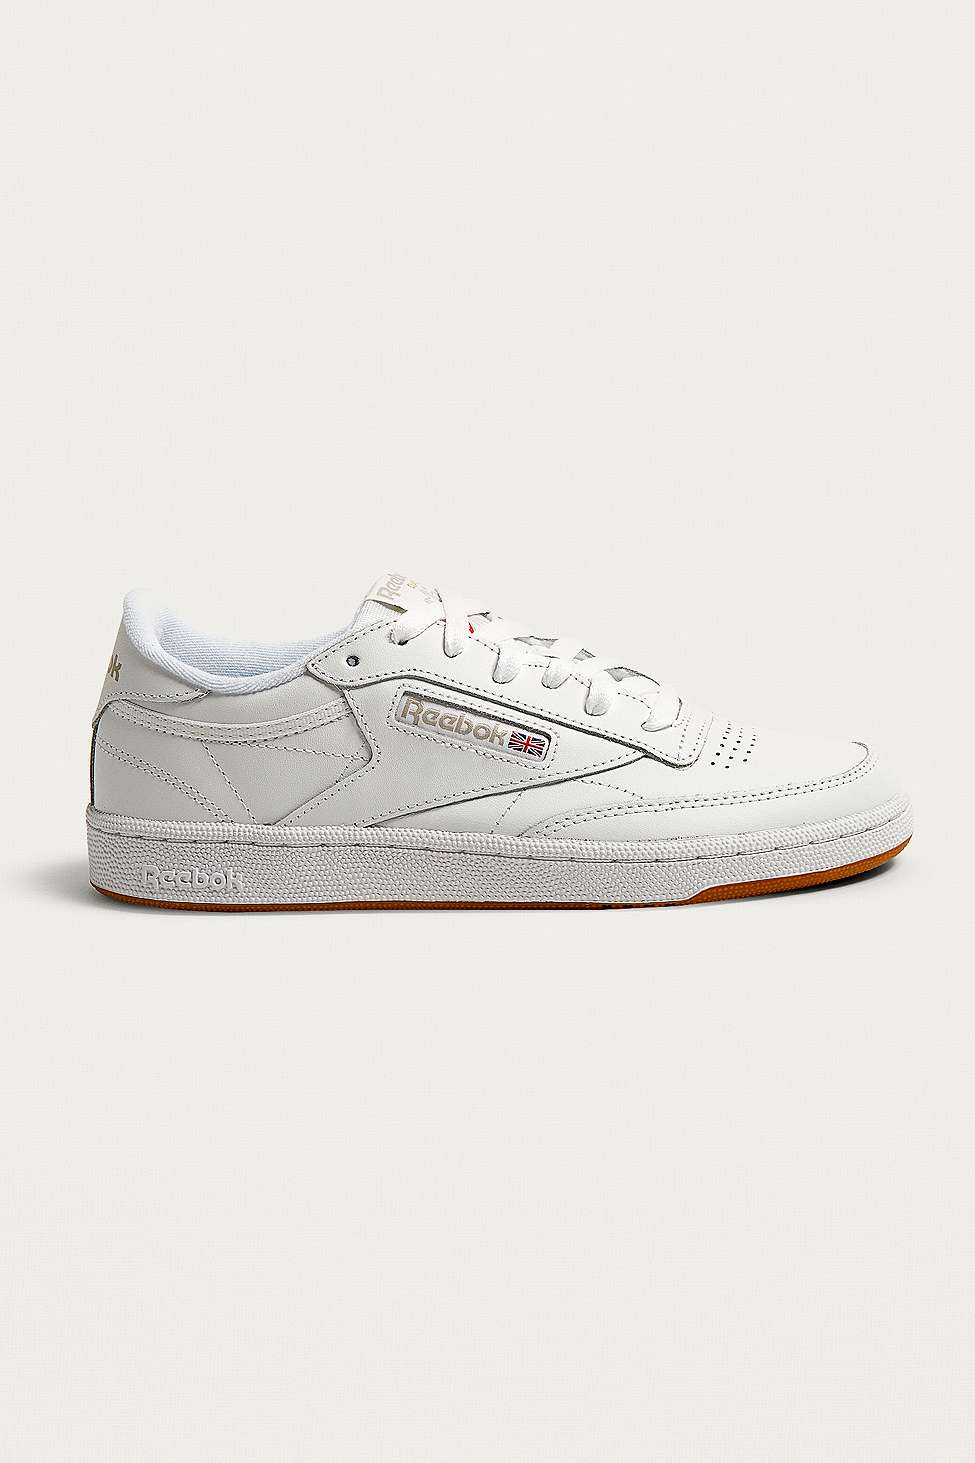 Classic Club C 85 Trainers In White And Gum - White Reebok